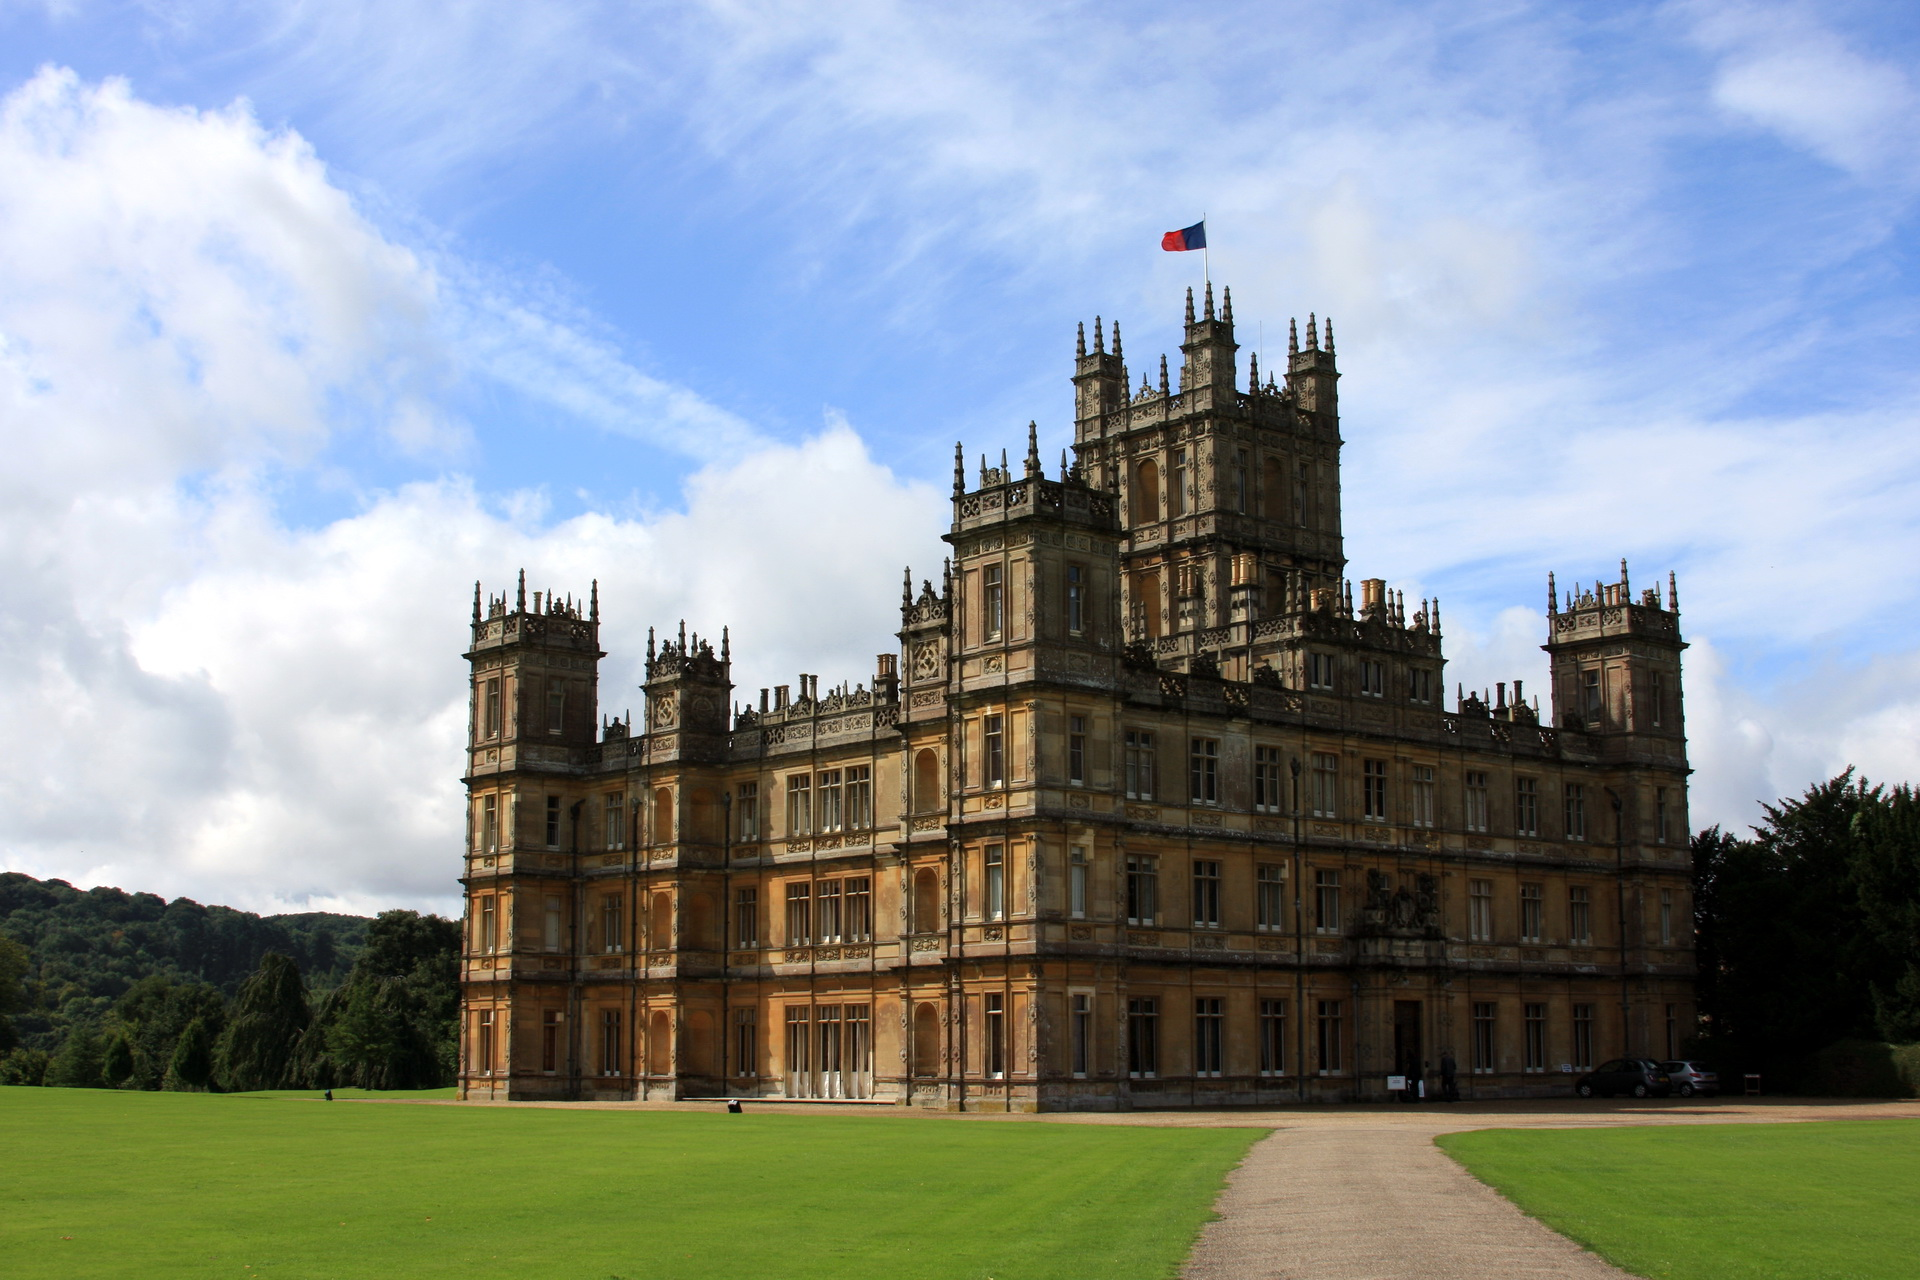 Highclere Castle Computer Wallpapers Desktop Backgrounds 1920x1280 1920x1280